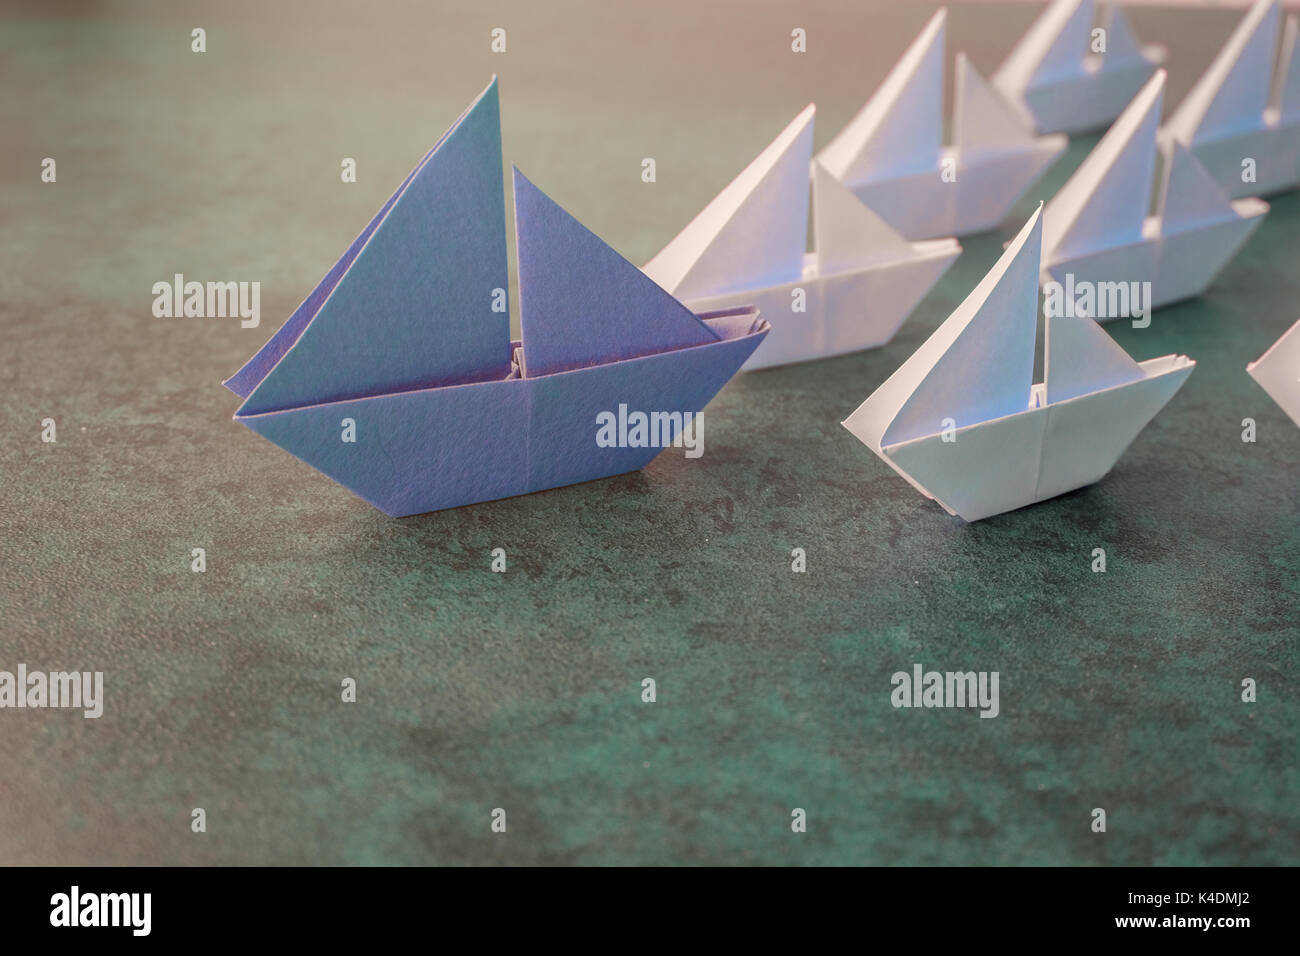 Origami Papier Segelboote, Leadership Business Konzept, Toning Stockbild